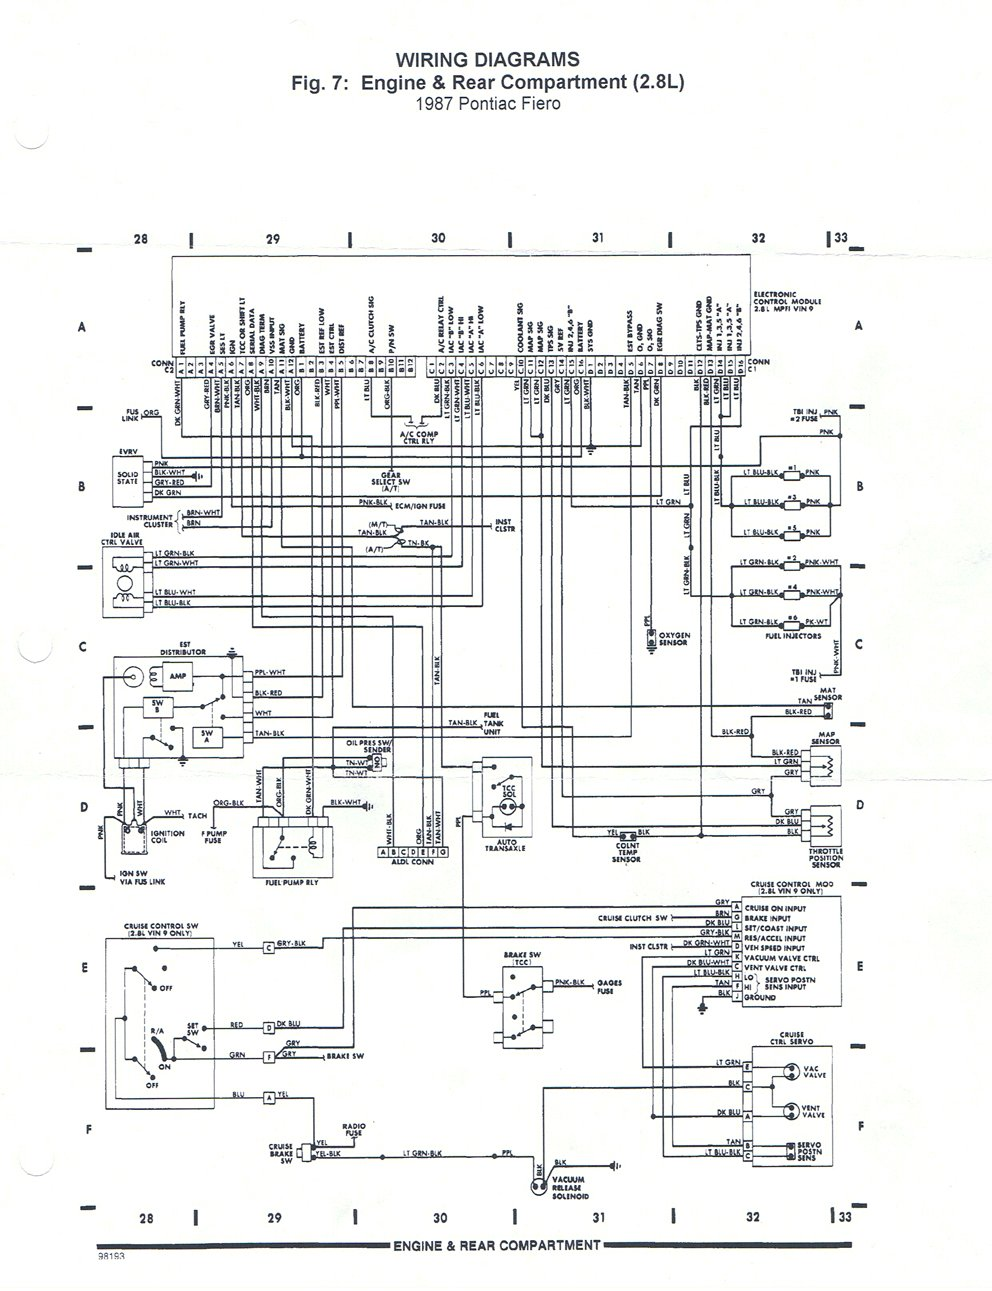 87FieroEng_wire_1 fiero wiring diagram fiero headlight wiring diagram \u2022 wiring Dodge Ram Wiring Diagram at bakdesigns.co